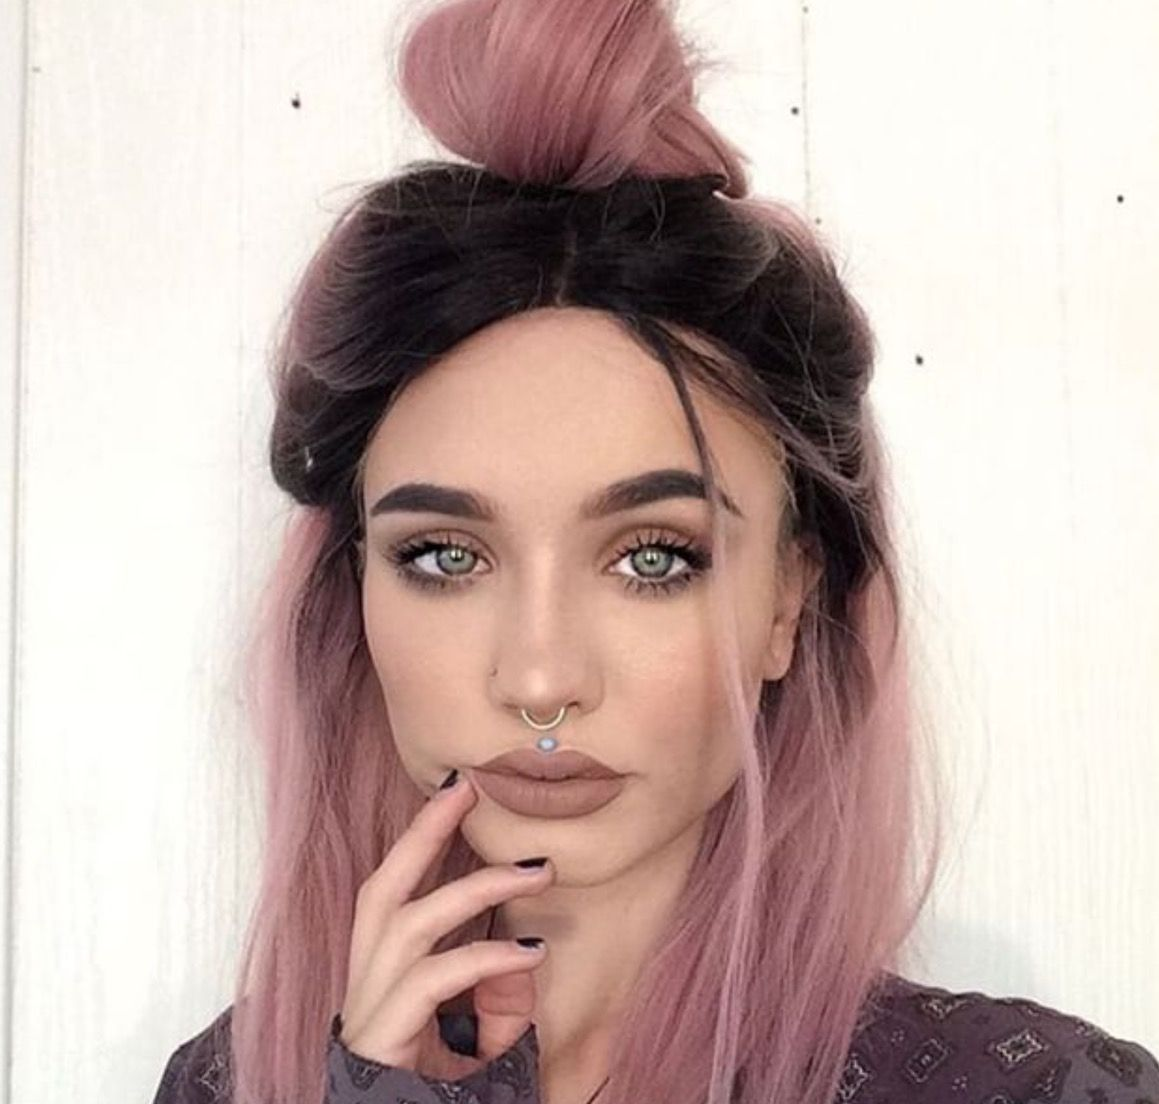 Images about hair colors and styles on pinterest - Rose Pink Hair Color With Dark Roots